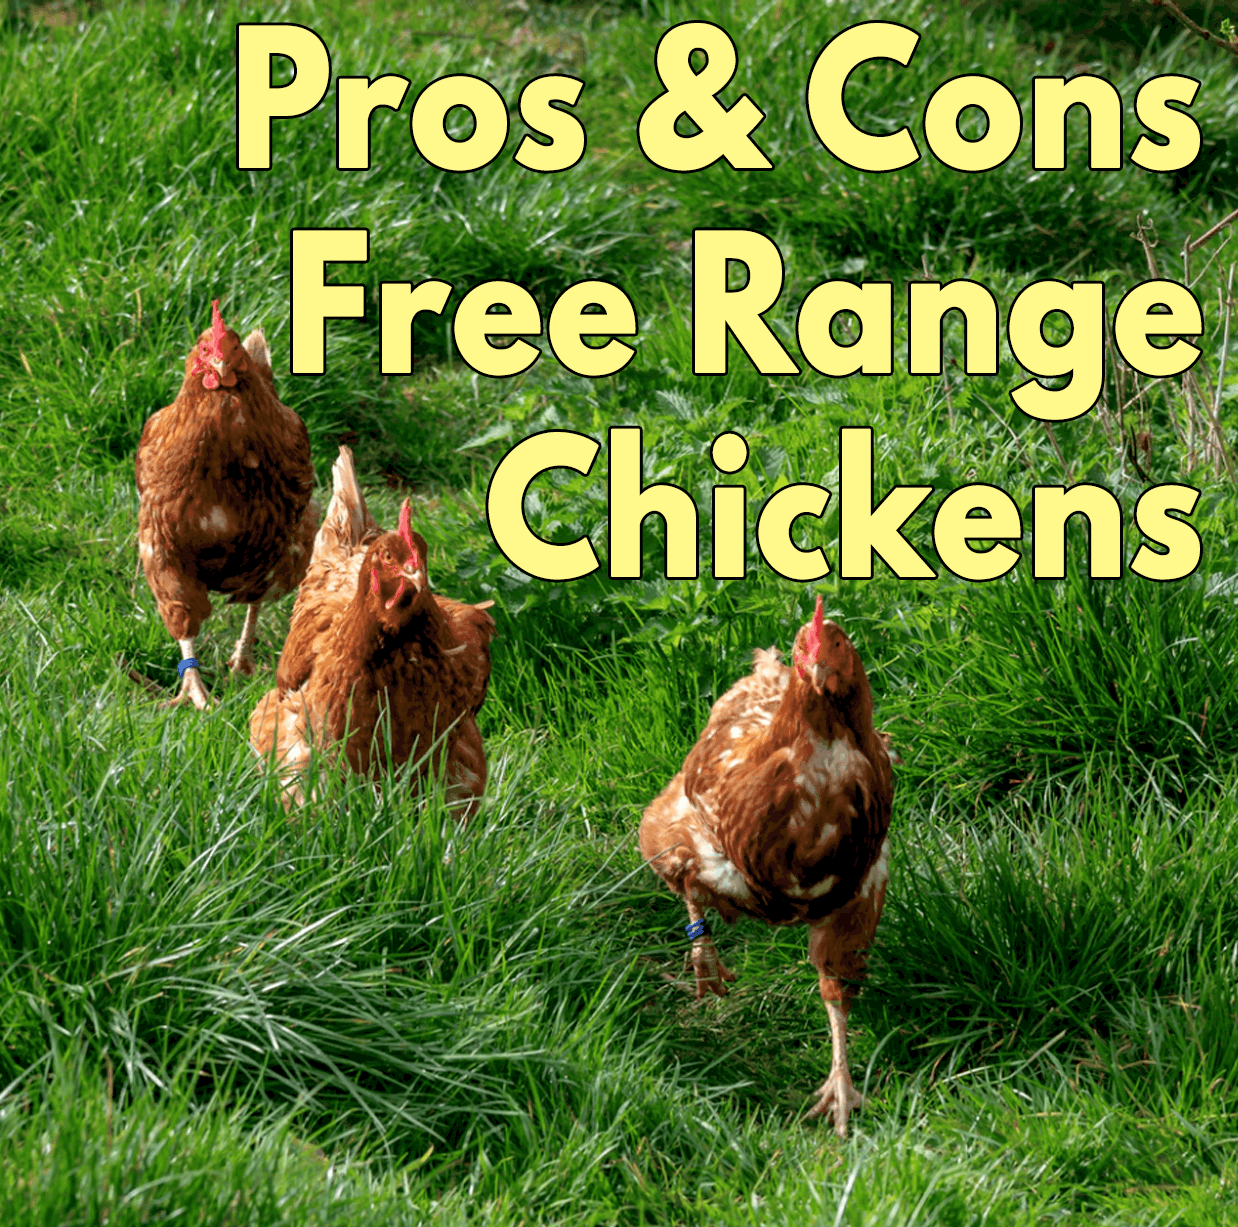 Pros and Cons of Free range chickens